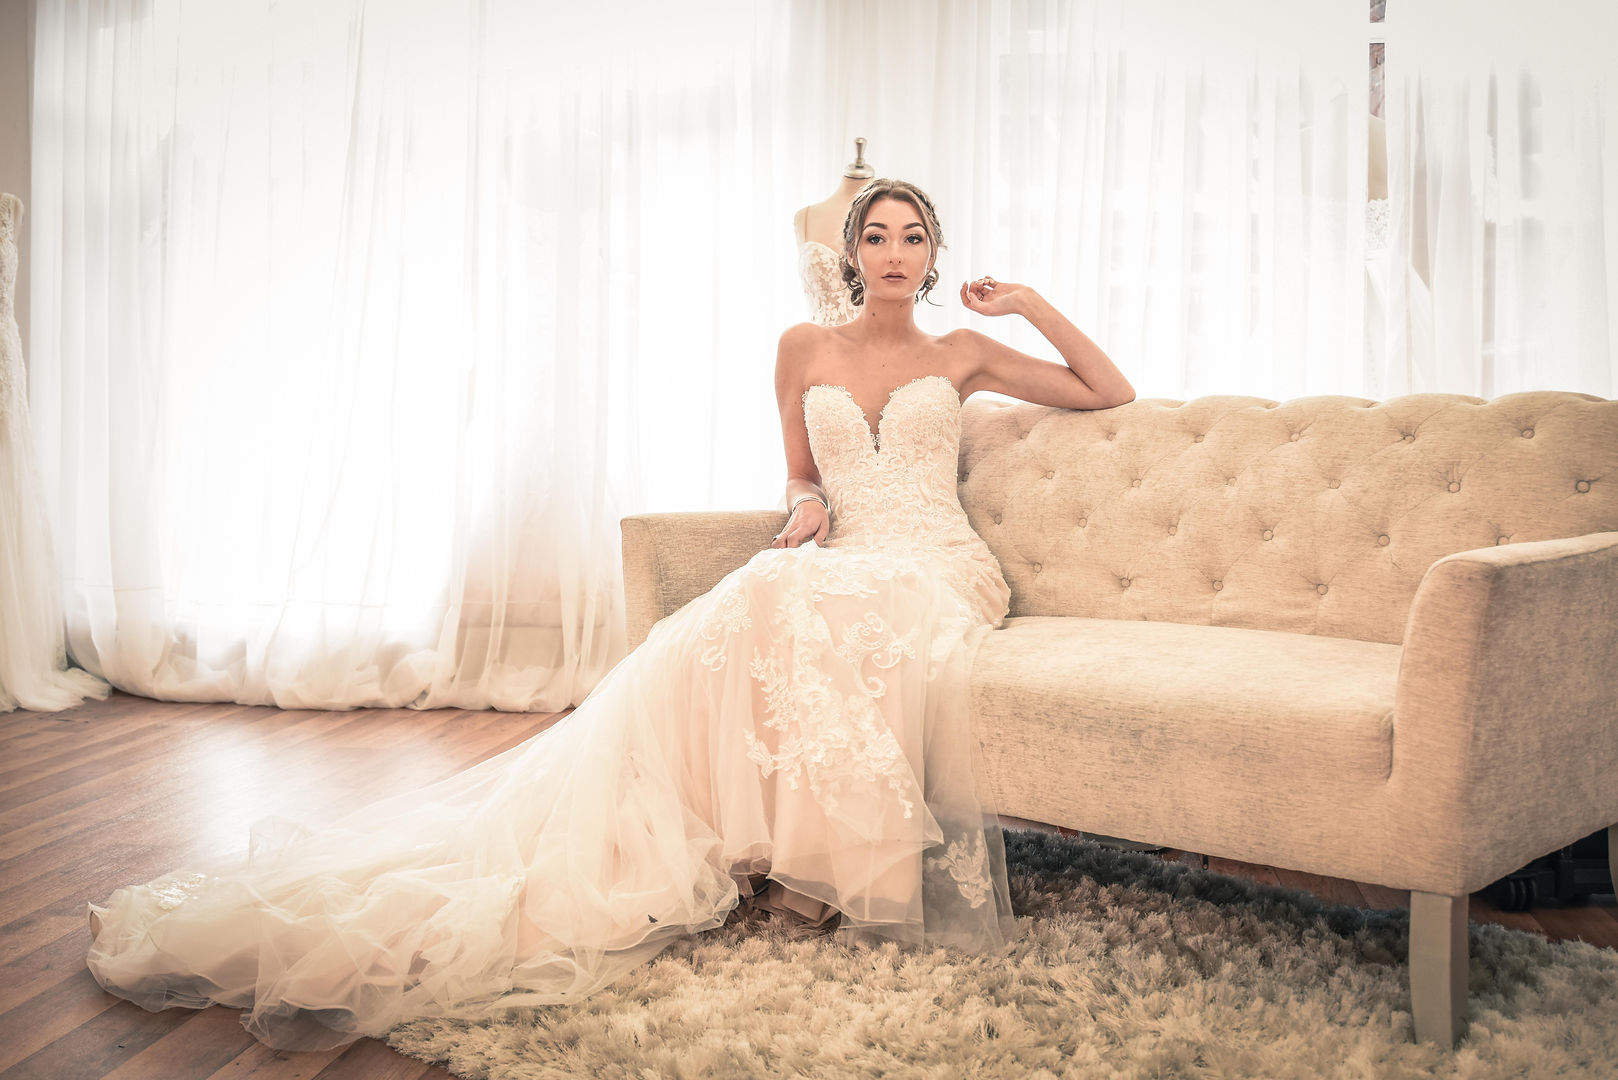 fross bridal styled shoot